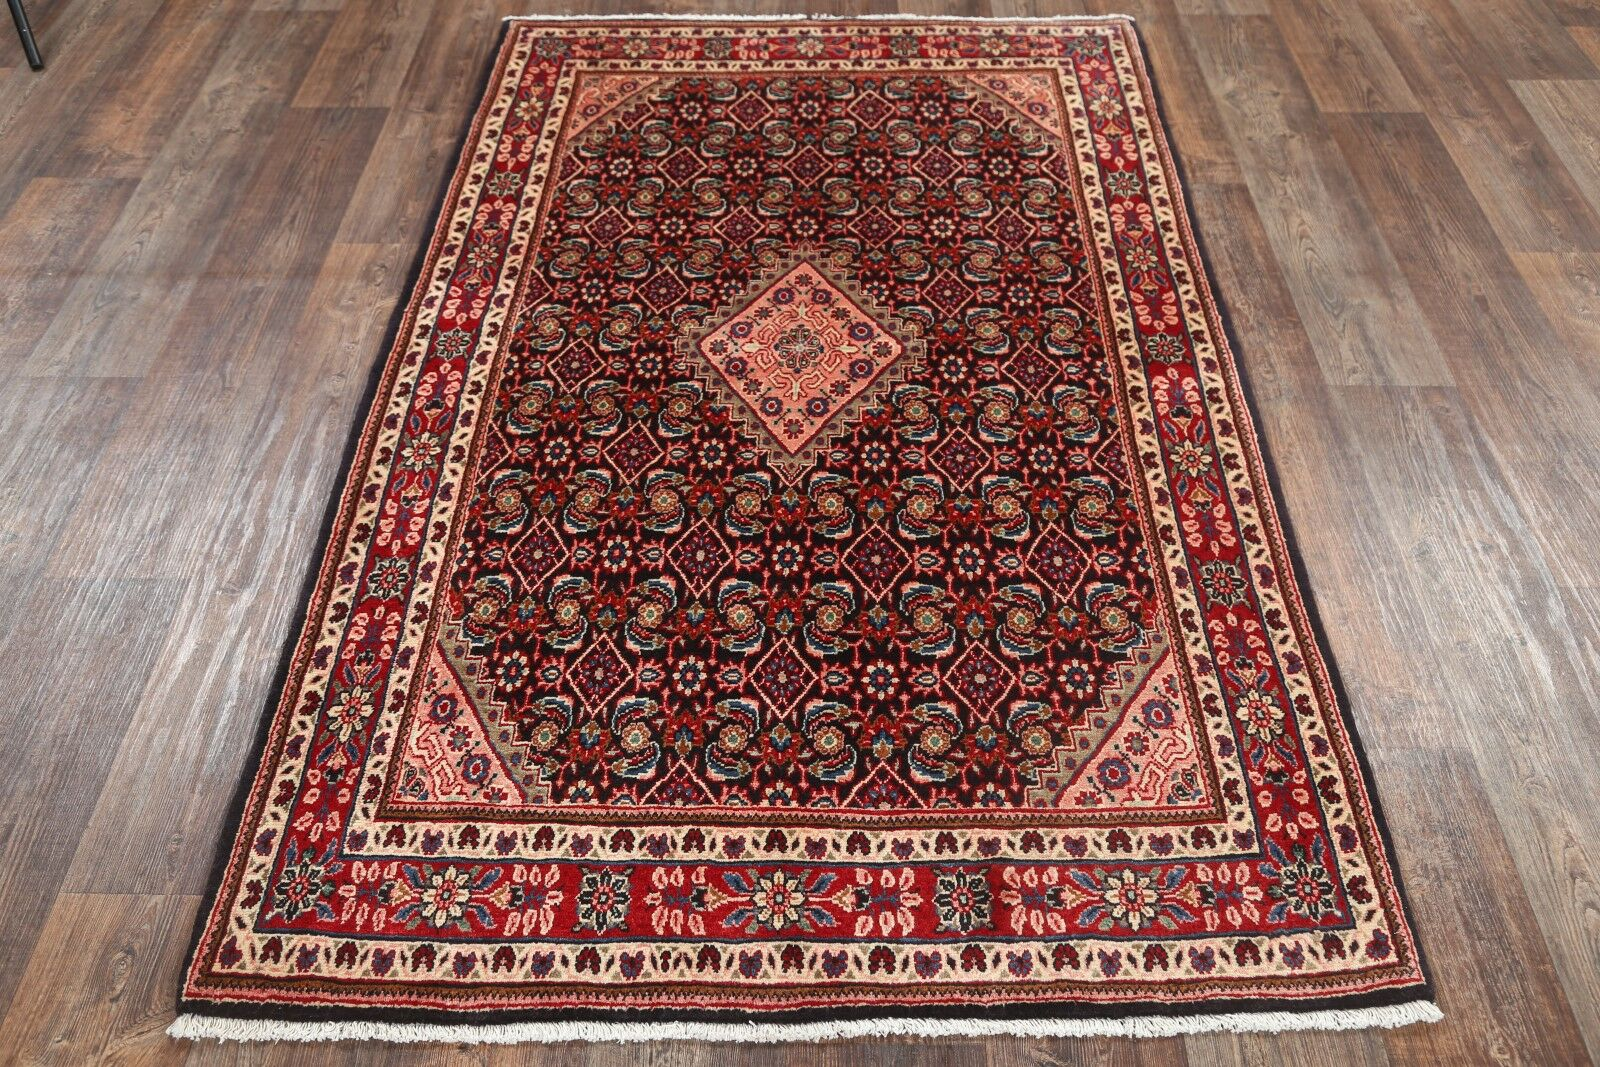 One-of-a-Kind Sarouk Persian Hand-Knotted 4'4